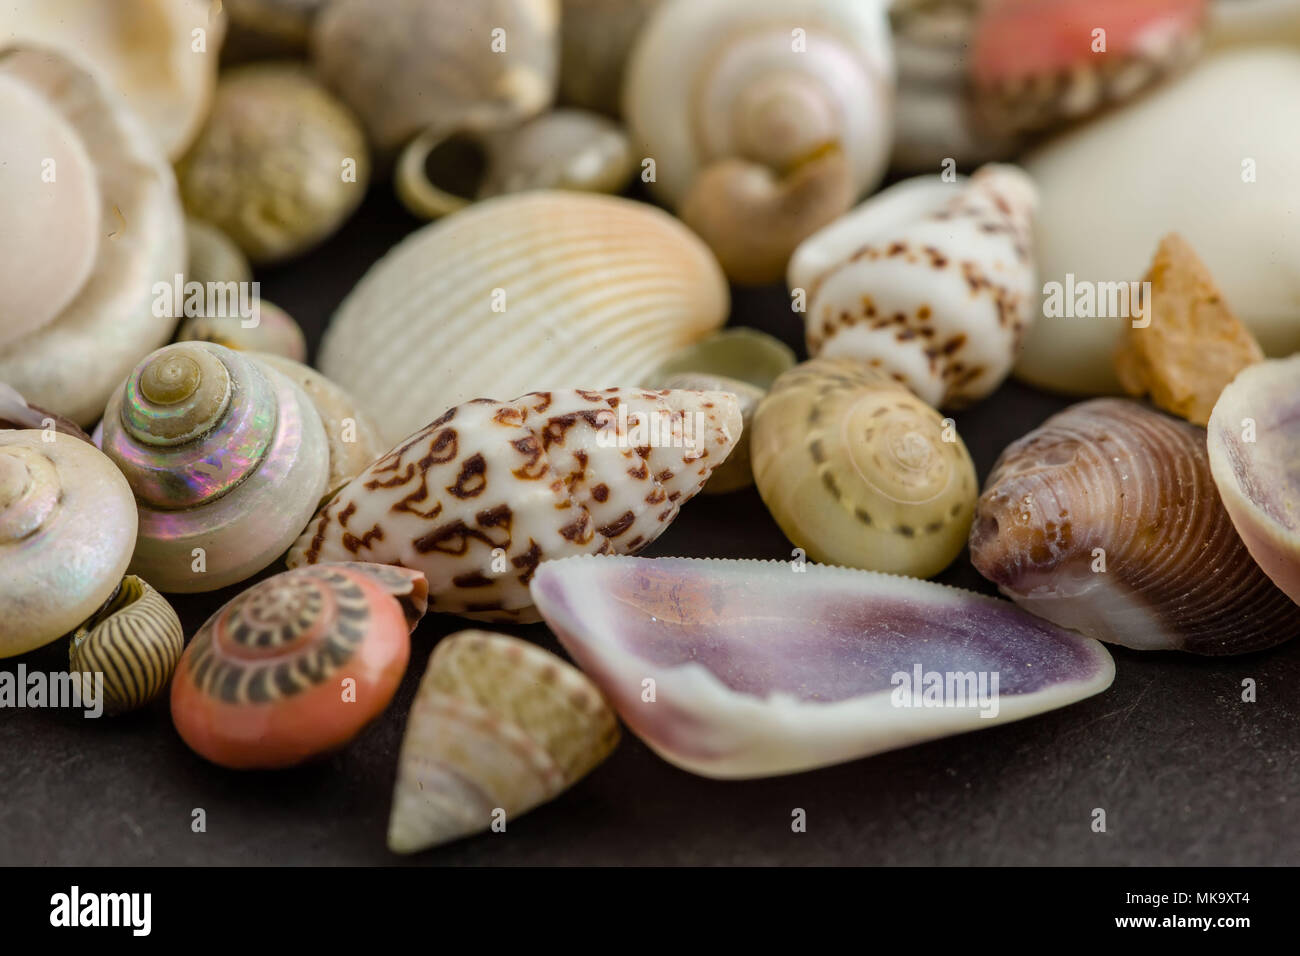 a close up of small sea shells from the sea shore - Stock Image